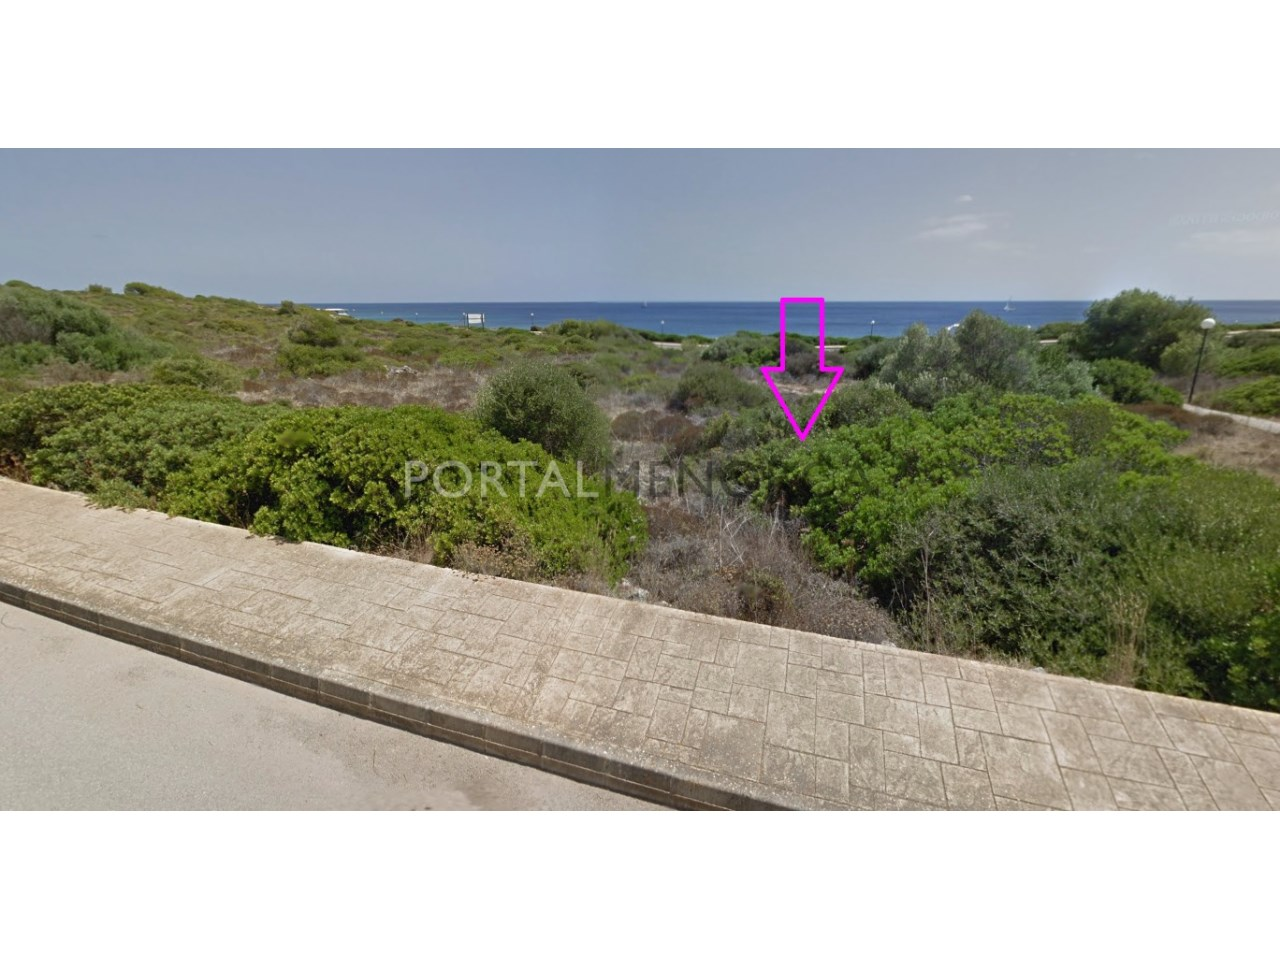 Building sea front plot of land for sale in Menorca